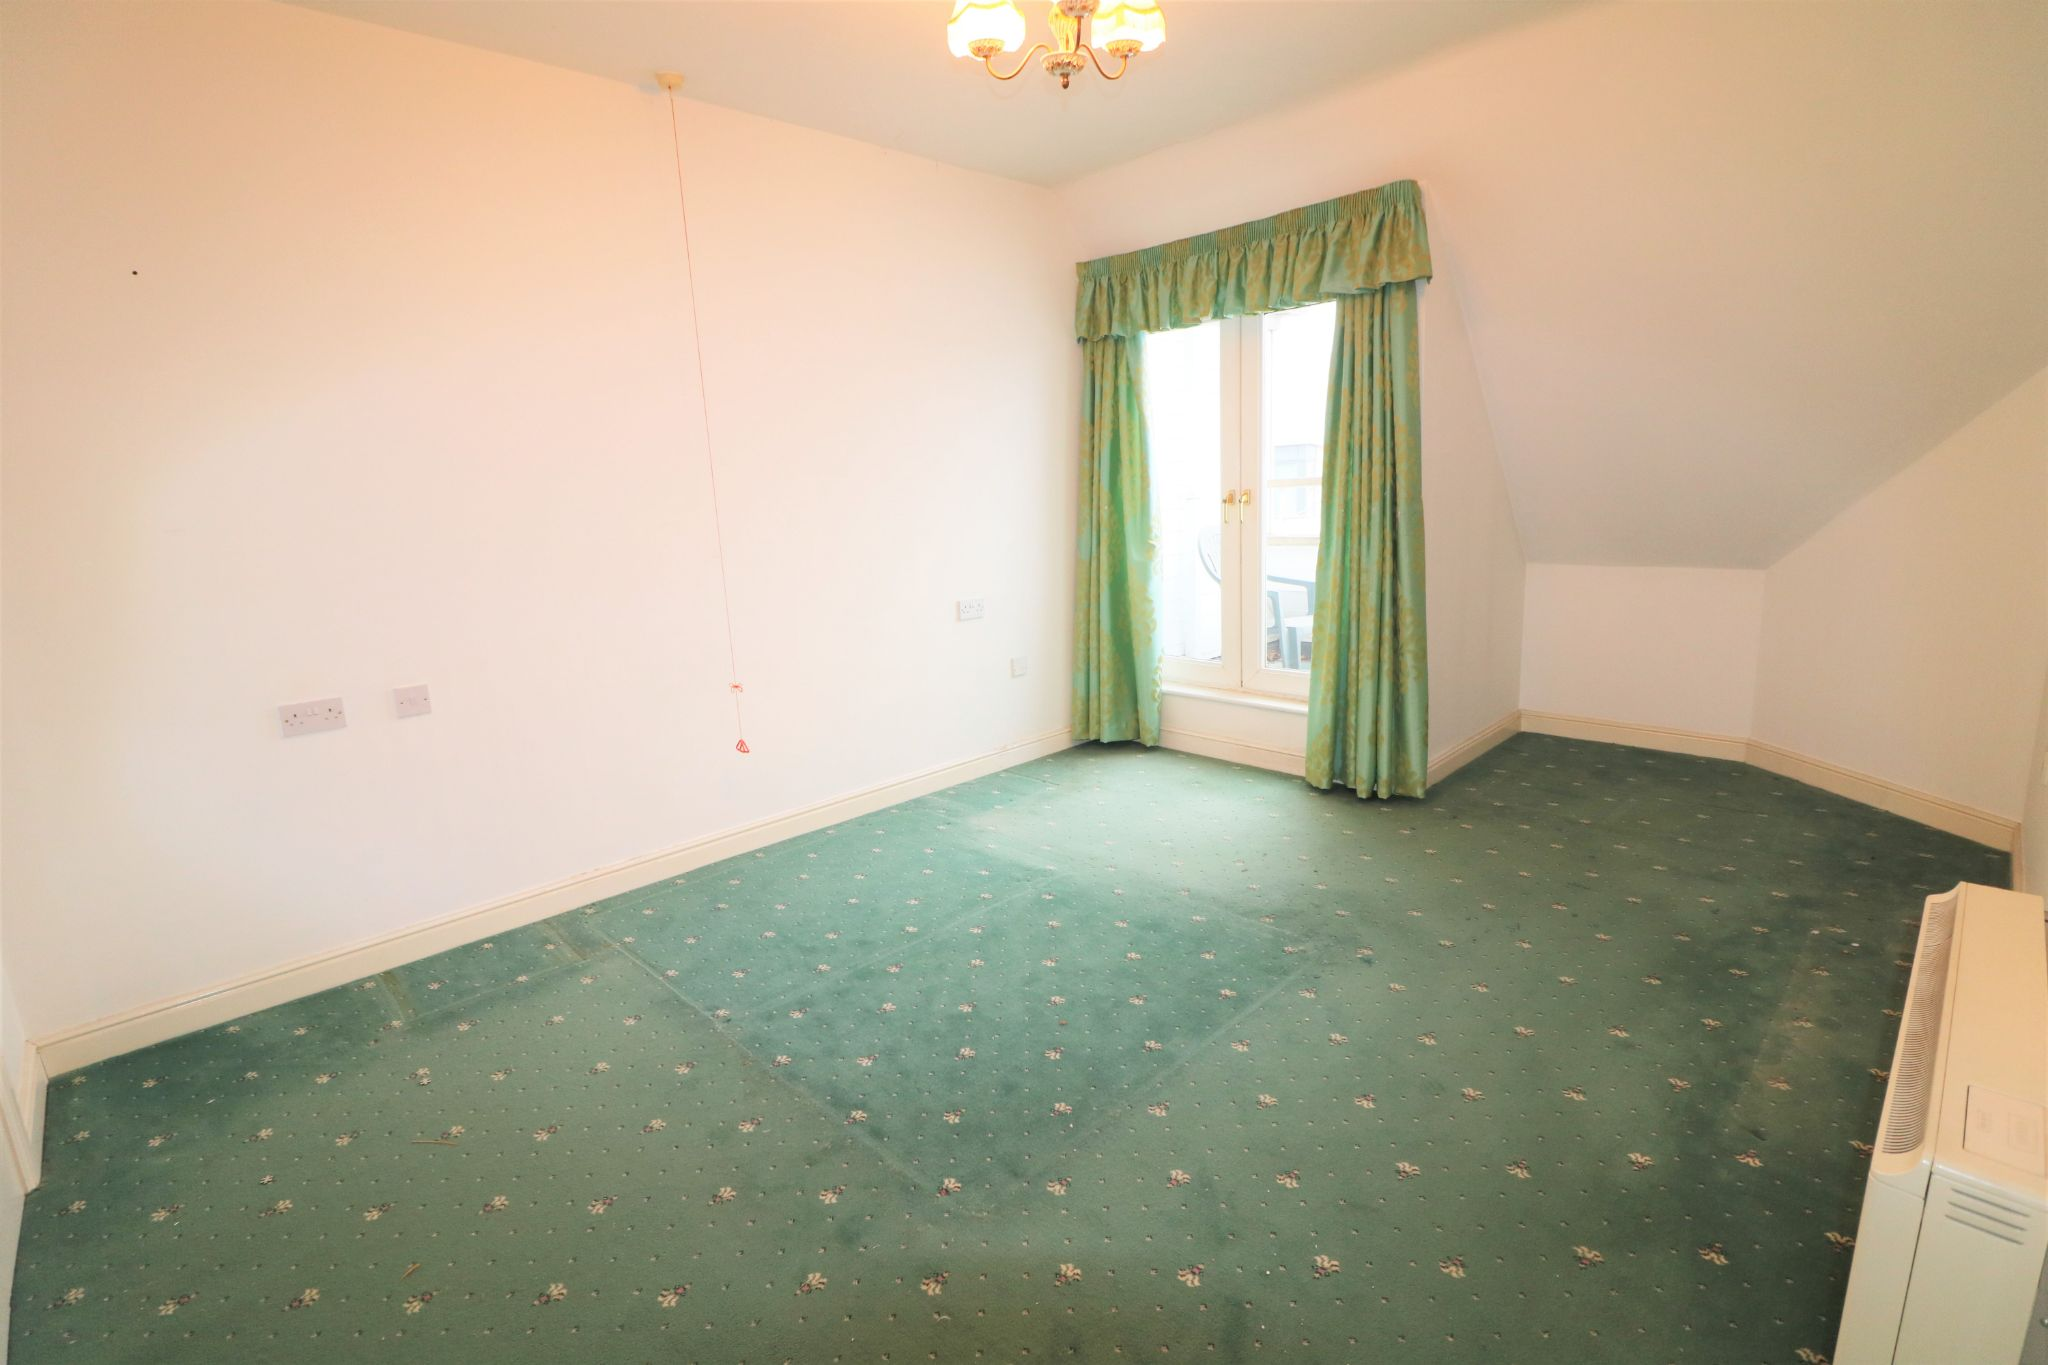 1 Bedroom Penthouse Flat/apartment For Sale - Photograph 8